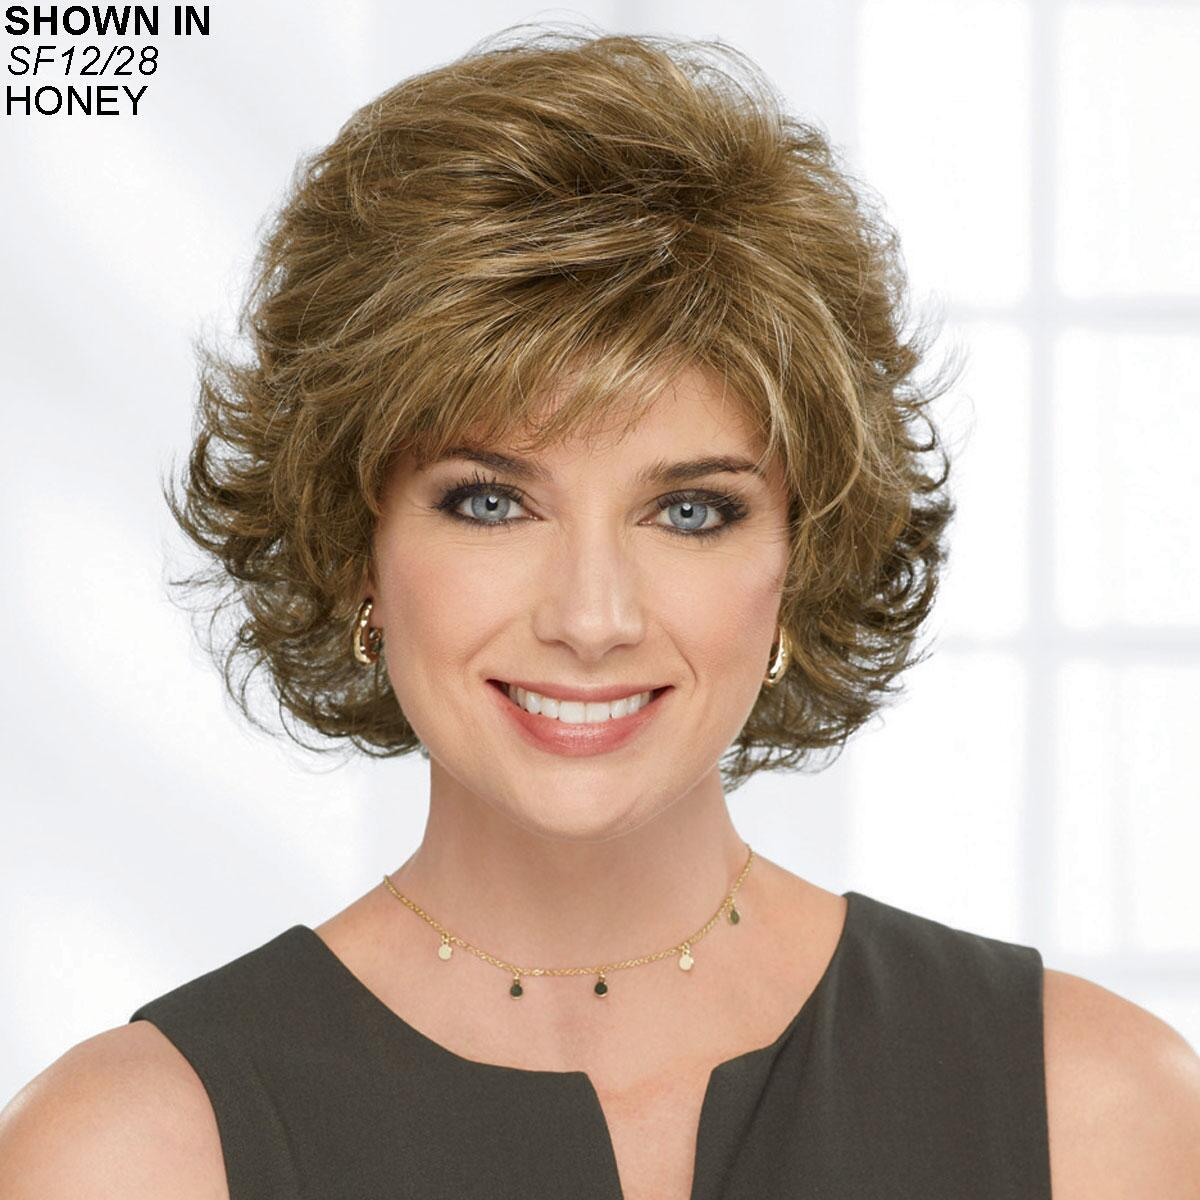 Shop our online selection of synthetic and % human hairpieces for women with thinning hair or hair loss. Our hair pieces, clipons, ponytails and wiglets from Paula Young and Hairdo® provide additional coverage and fullness to your natural hair.